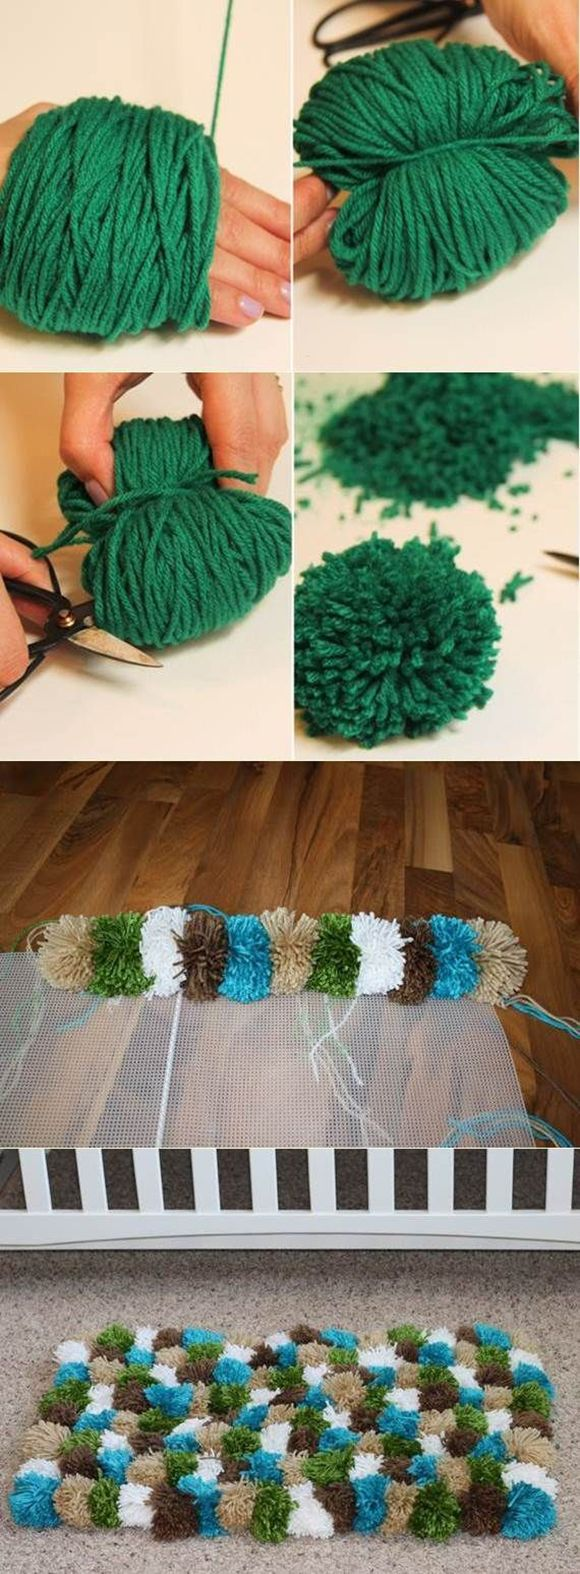 DIY Pom-Pom Decorations | DIY Crafts Bet we could turn this into something for a VBS craft too!